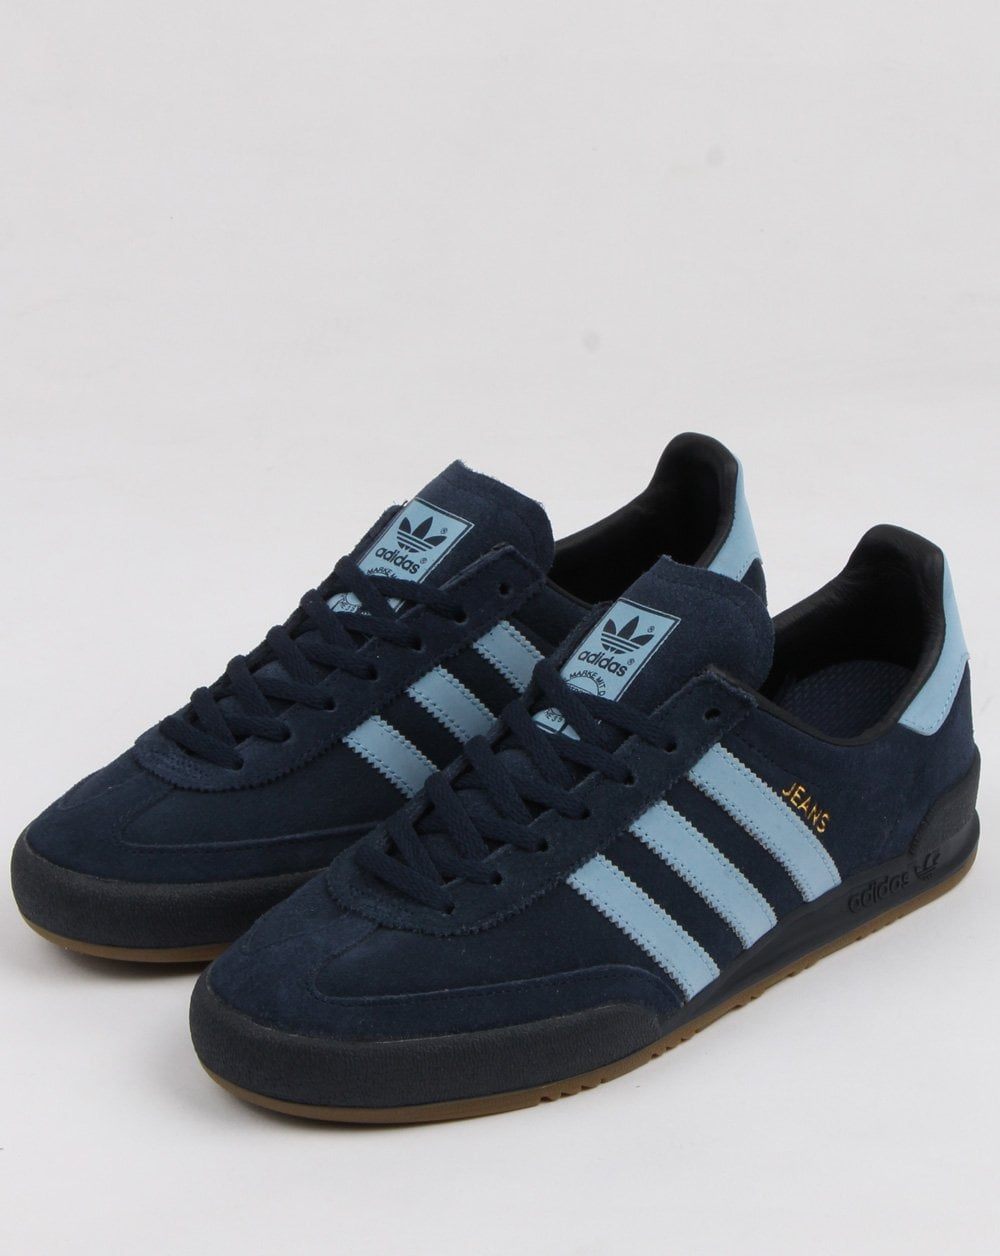 Classic 3 stripes adidas Jeans MKII